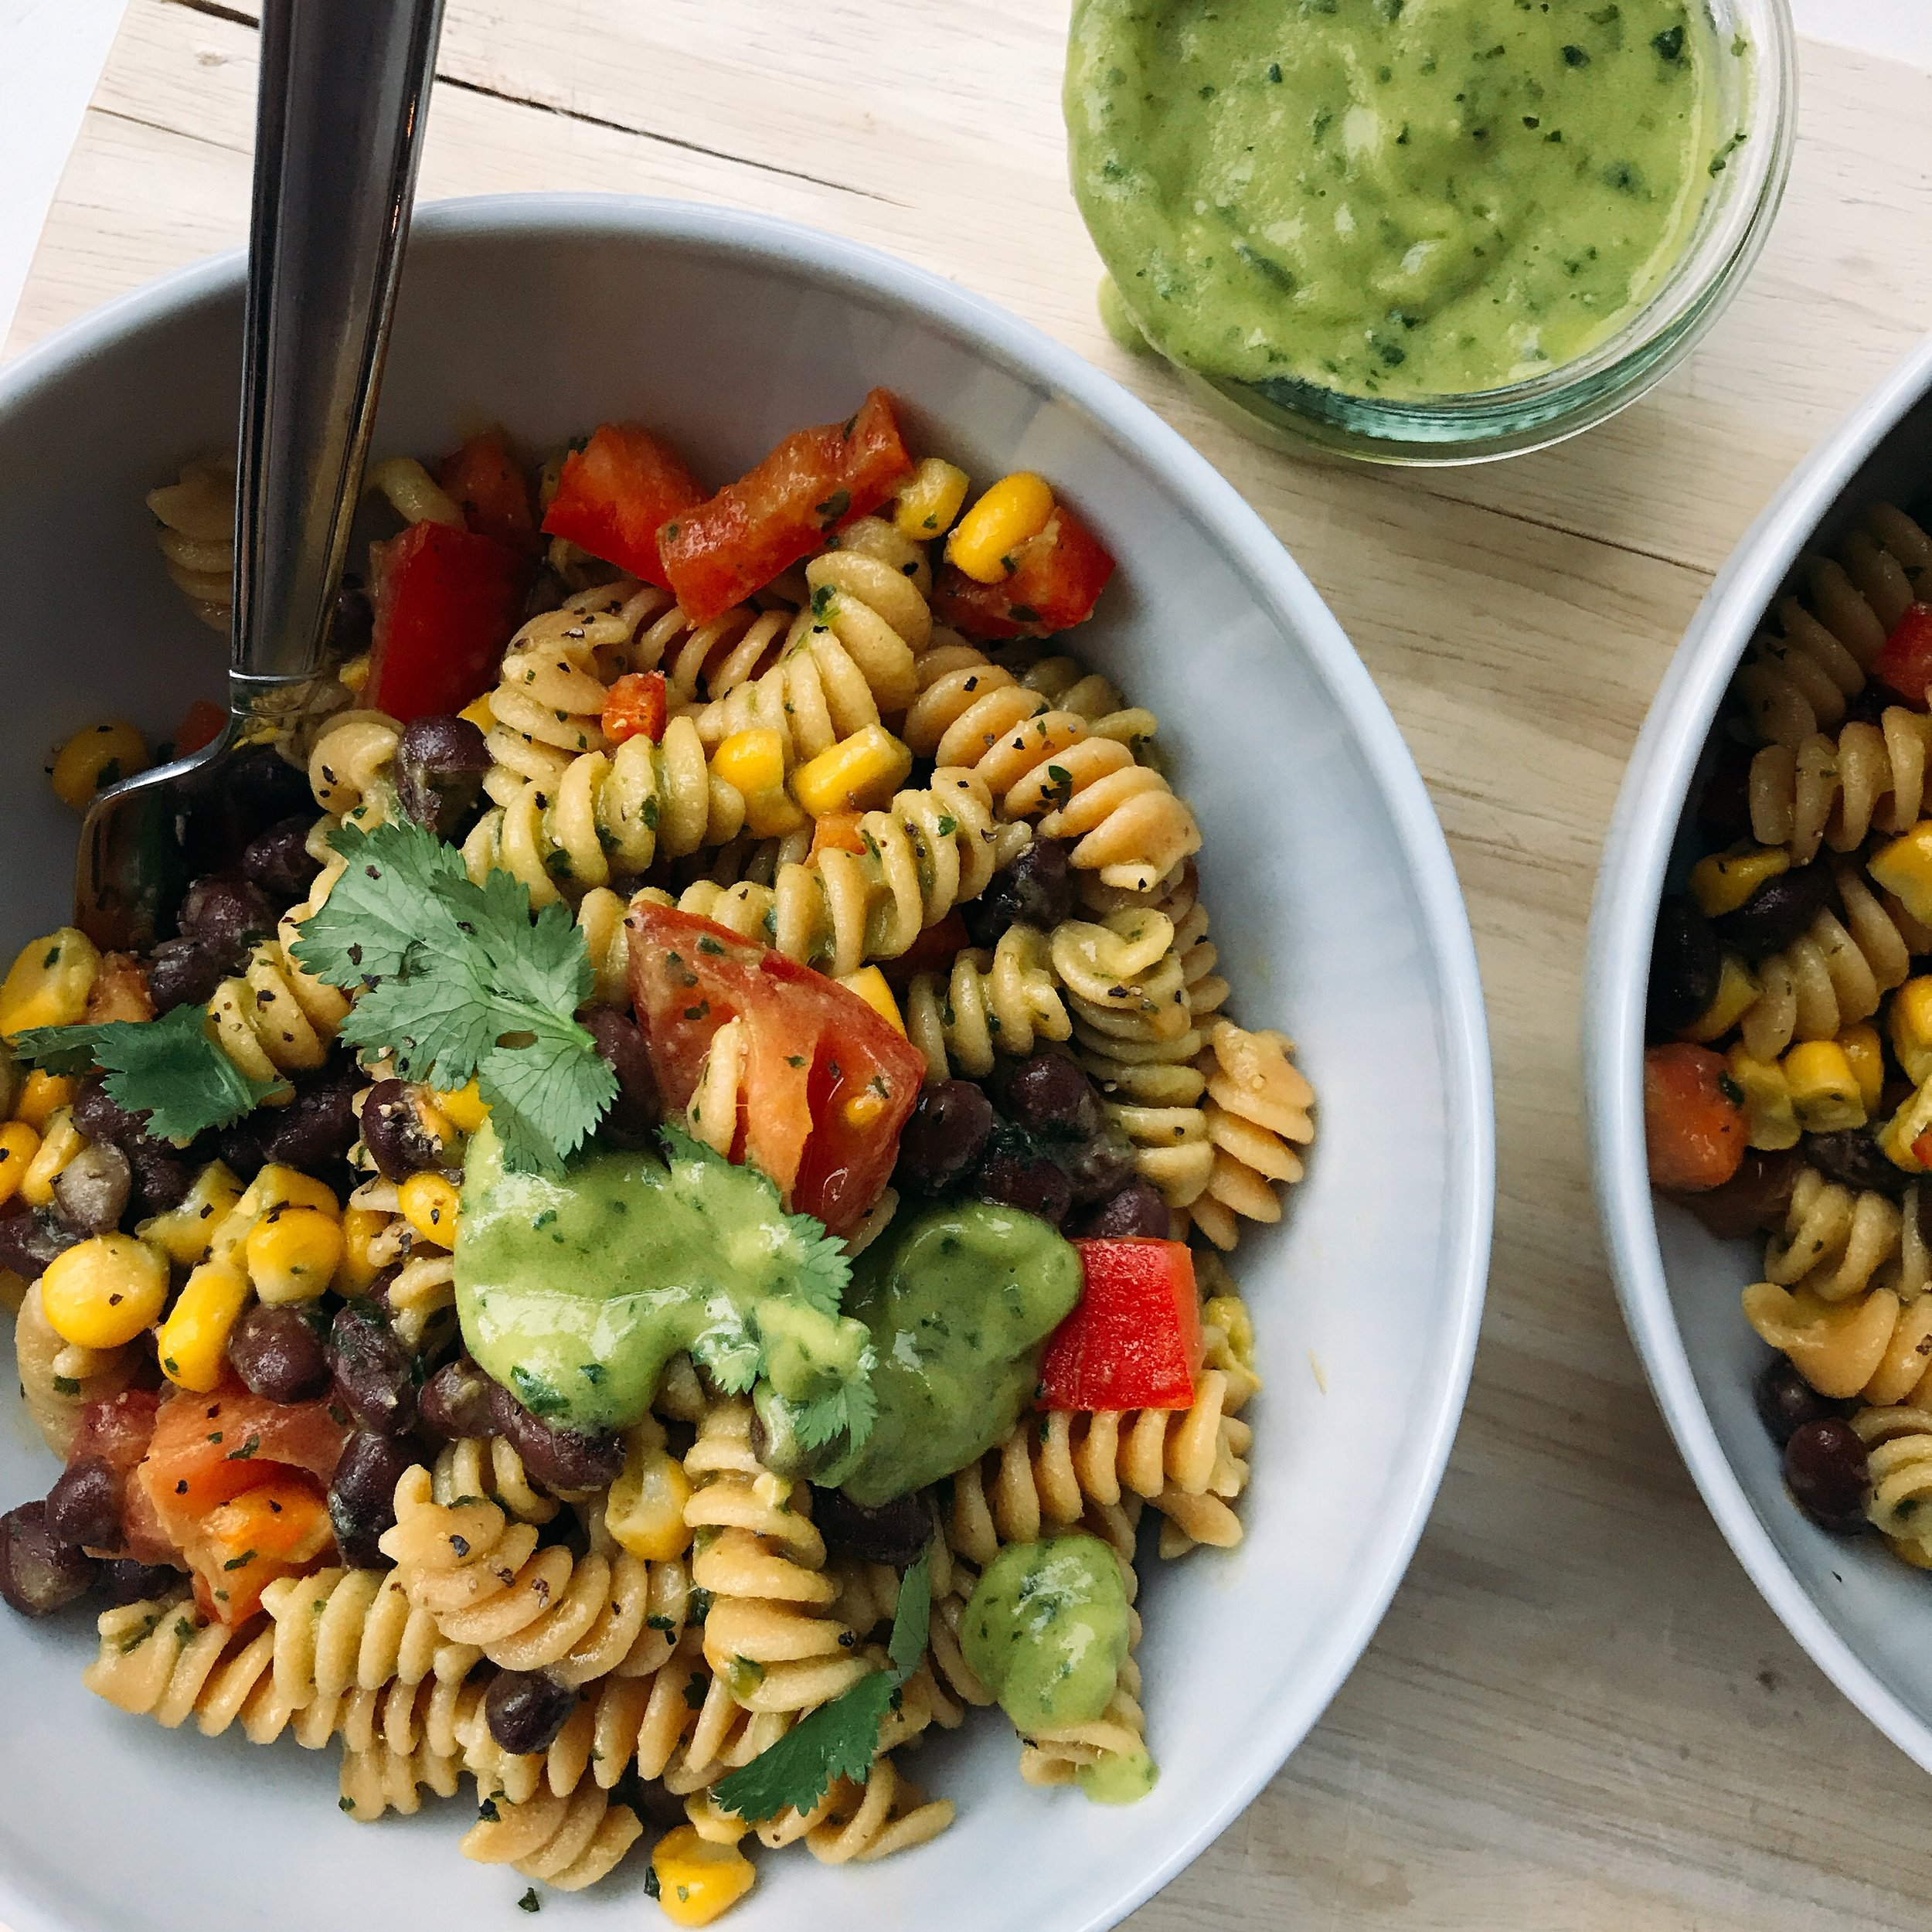 A delicious plant-based Mexican chickpea pasta salad packed with black beans, cherry tomatoes, corn, red peppers tossed in a creamy and light cilantro avocado sauce!